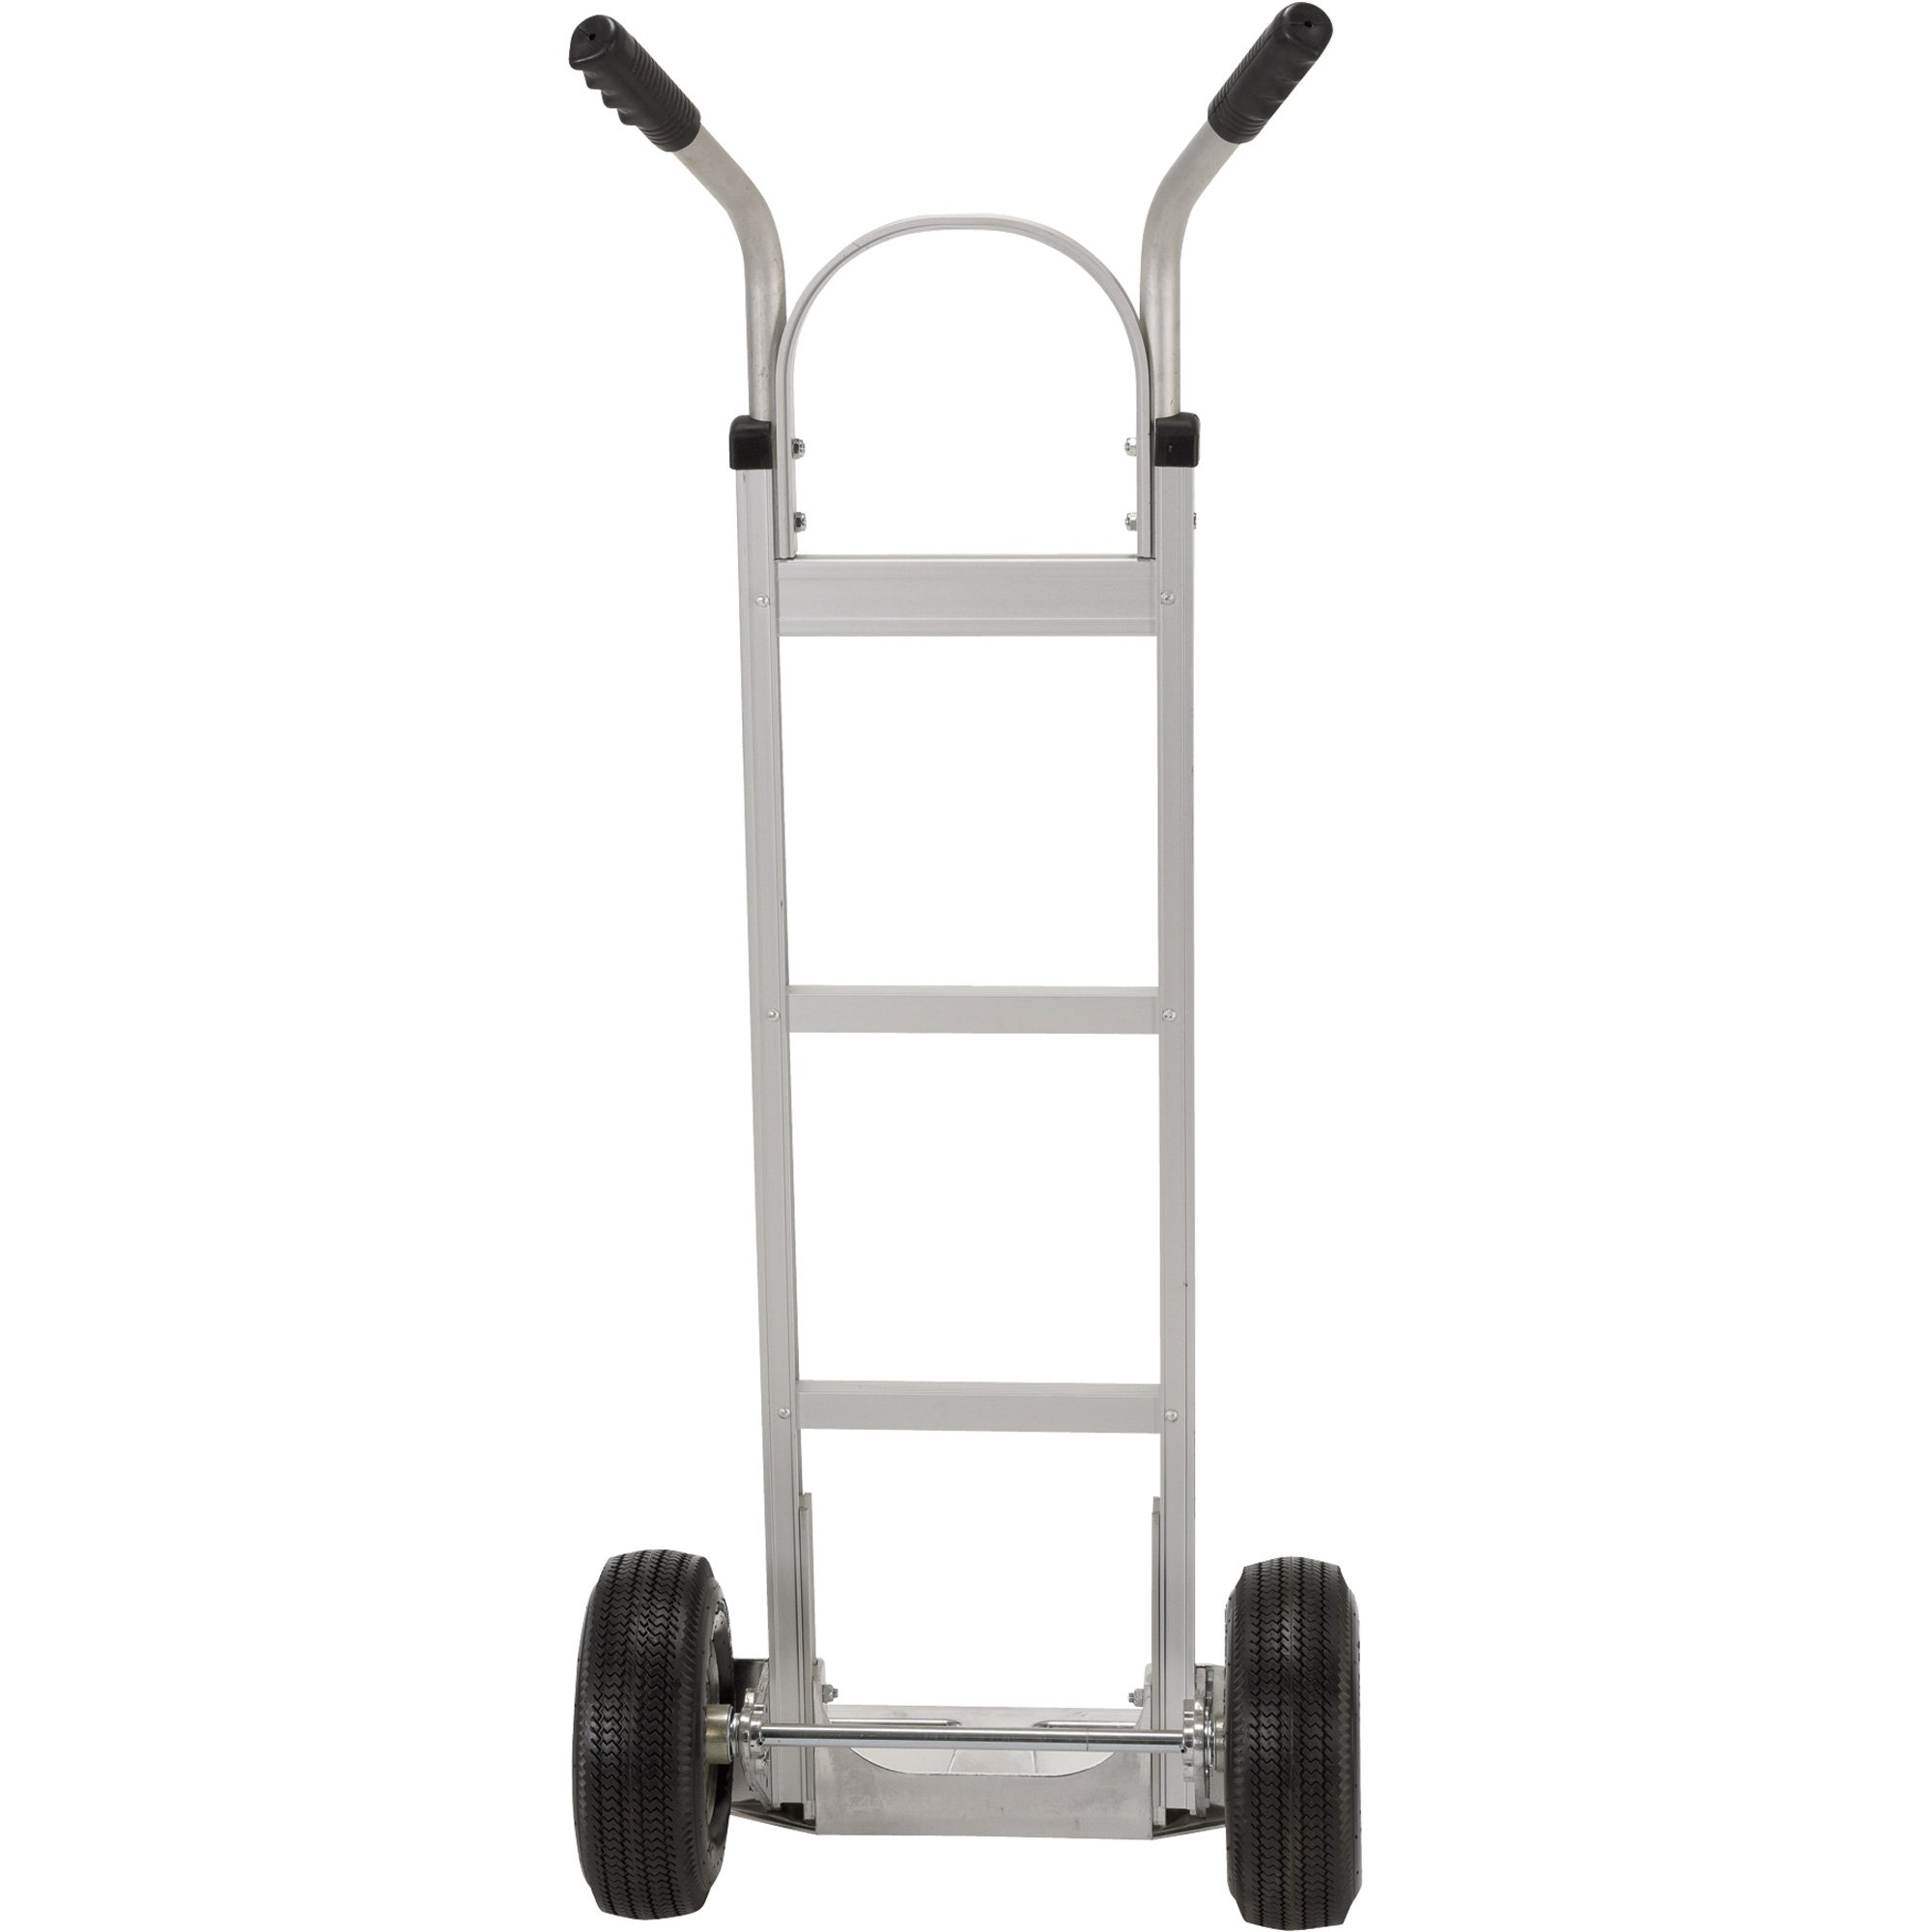 Vestil DHHT-500A Aluminum Hand Truck with Dual Handle, Pneumatic Wheels, 500 lbS Load Capacity, 49'' Height x 20-1/4'' Width x 18'' Depth